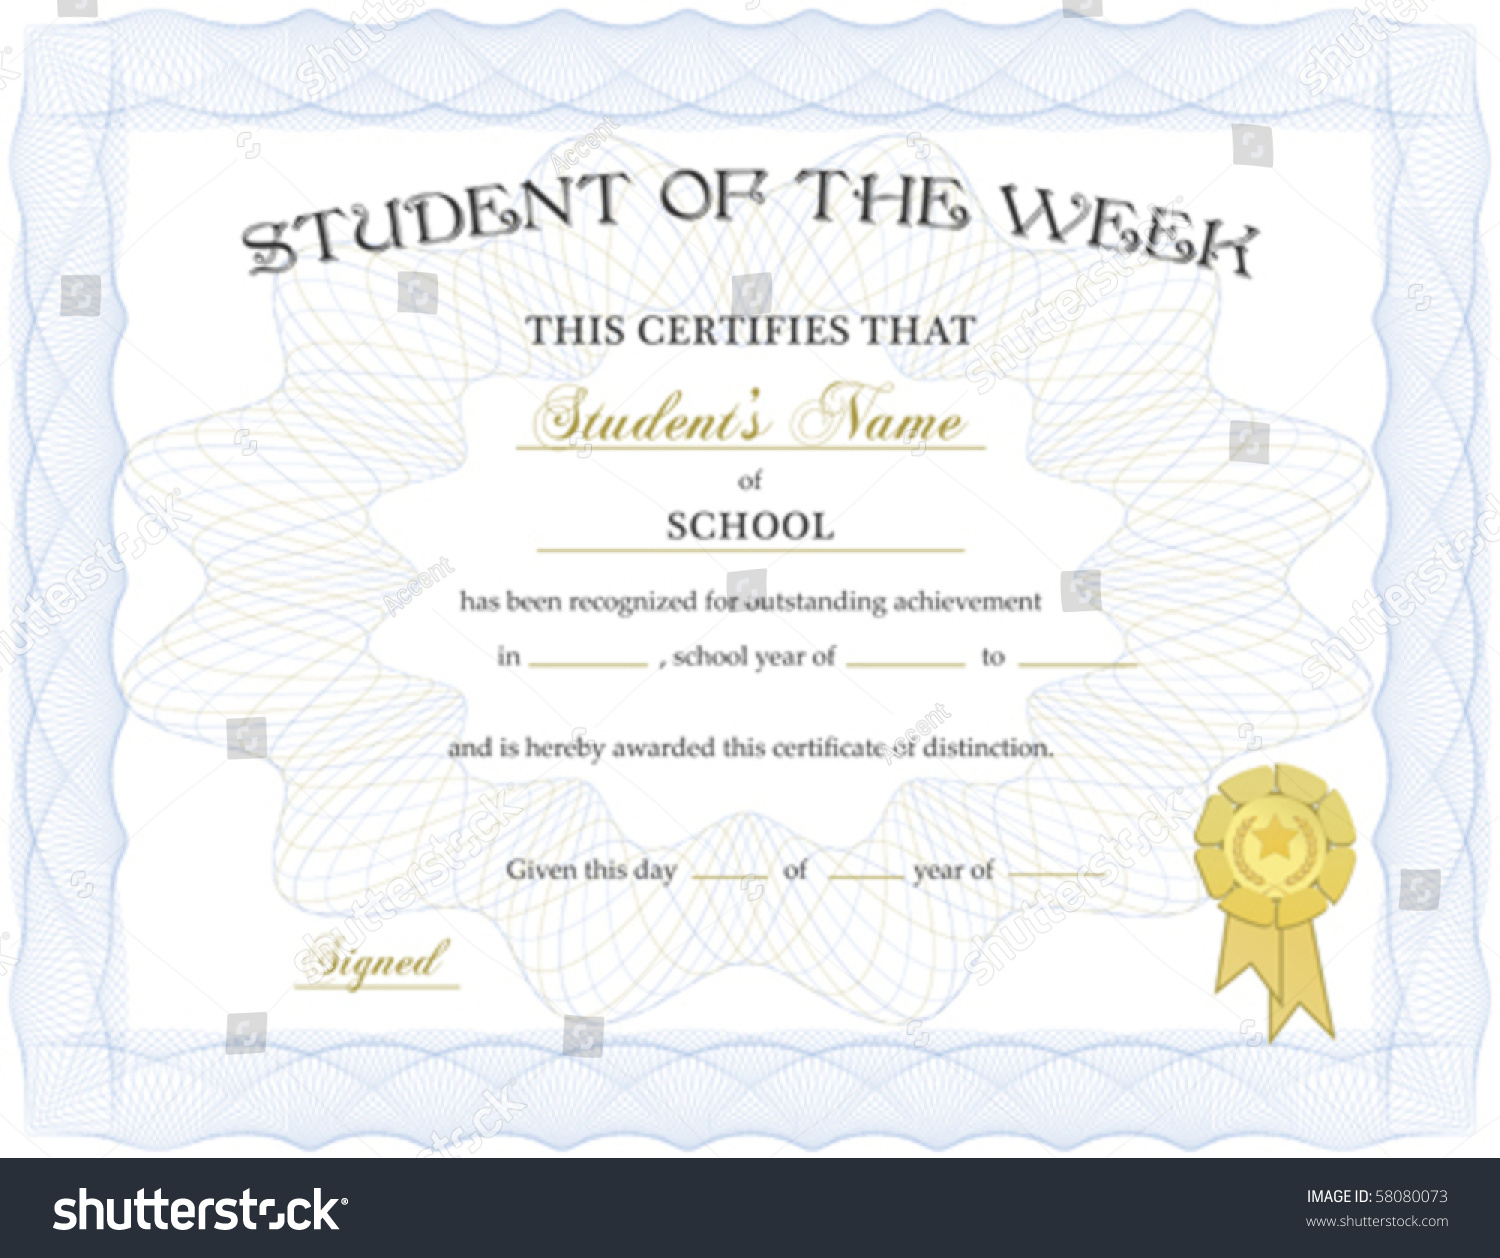 Royalty Free Student Of The Week Certificate Vector 58080073 Stock